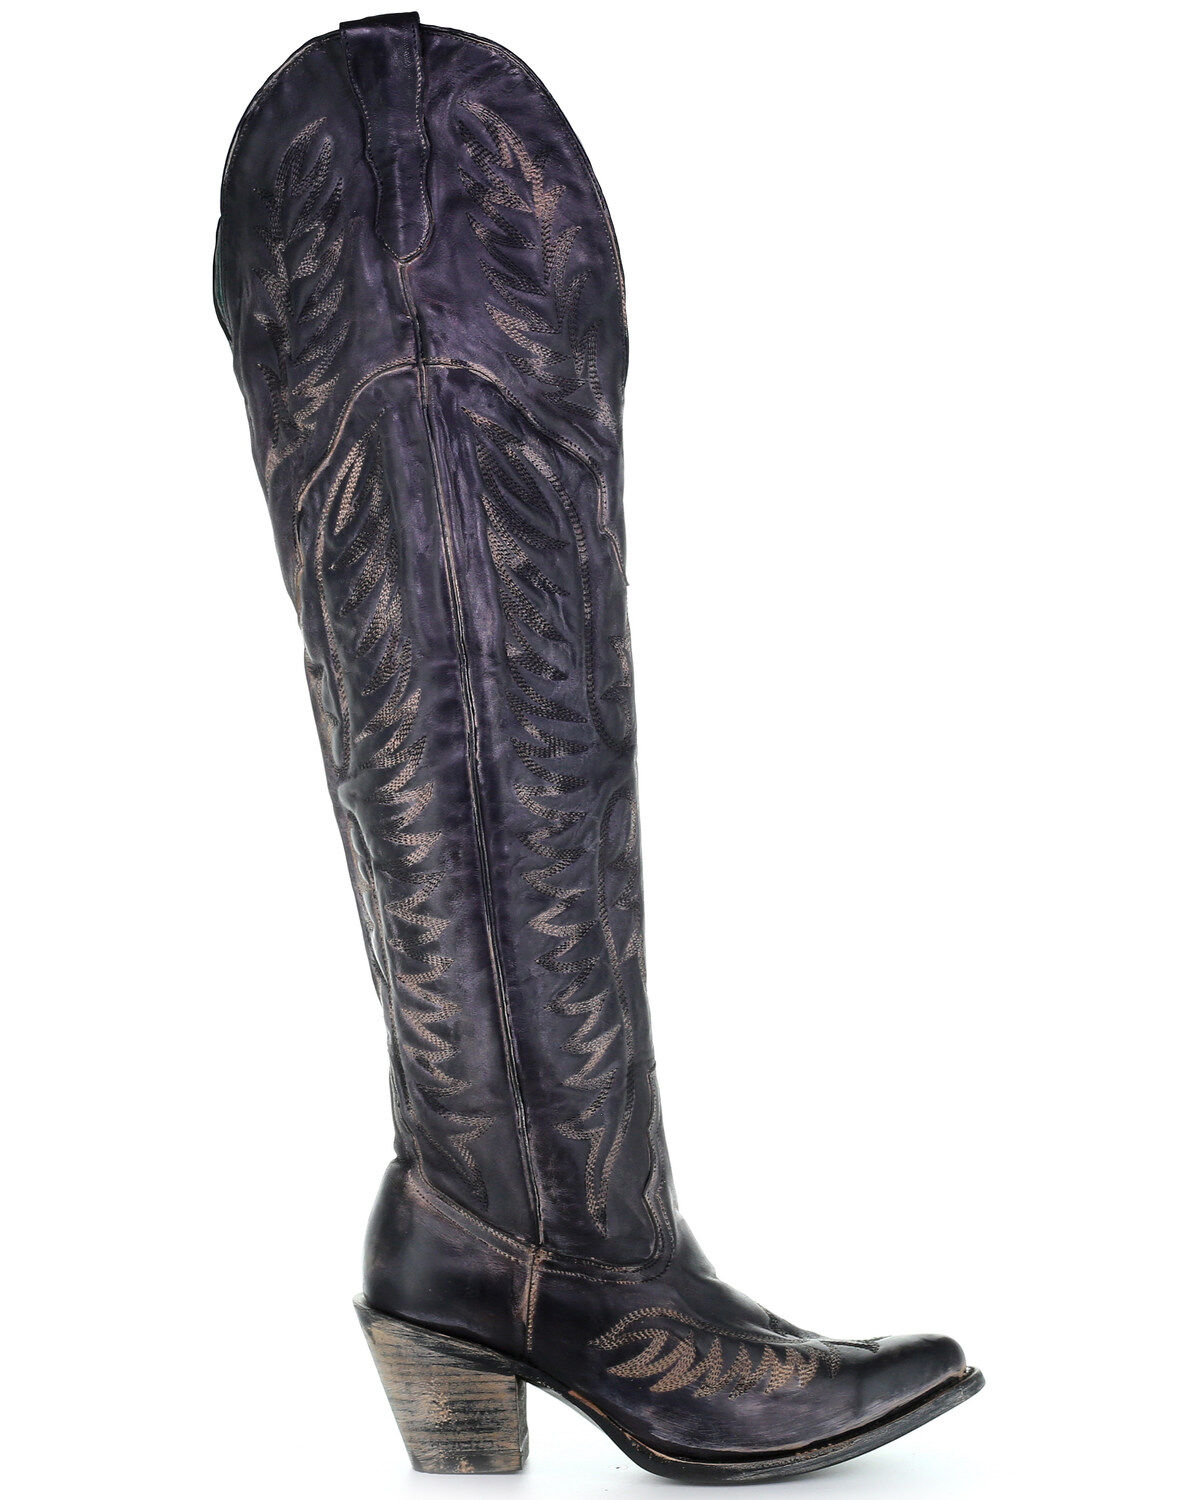 Corral Women's Black Embroidery Tall